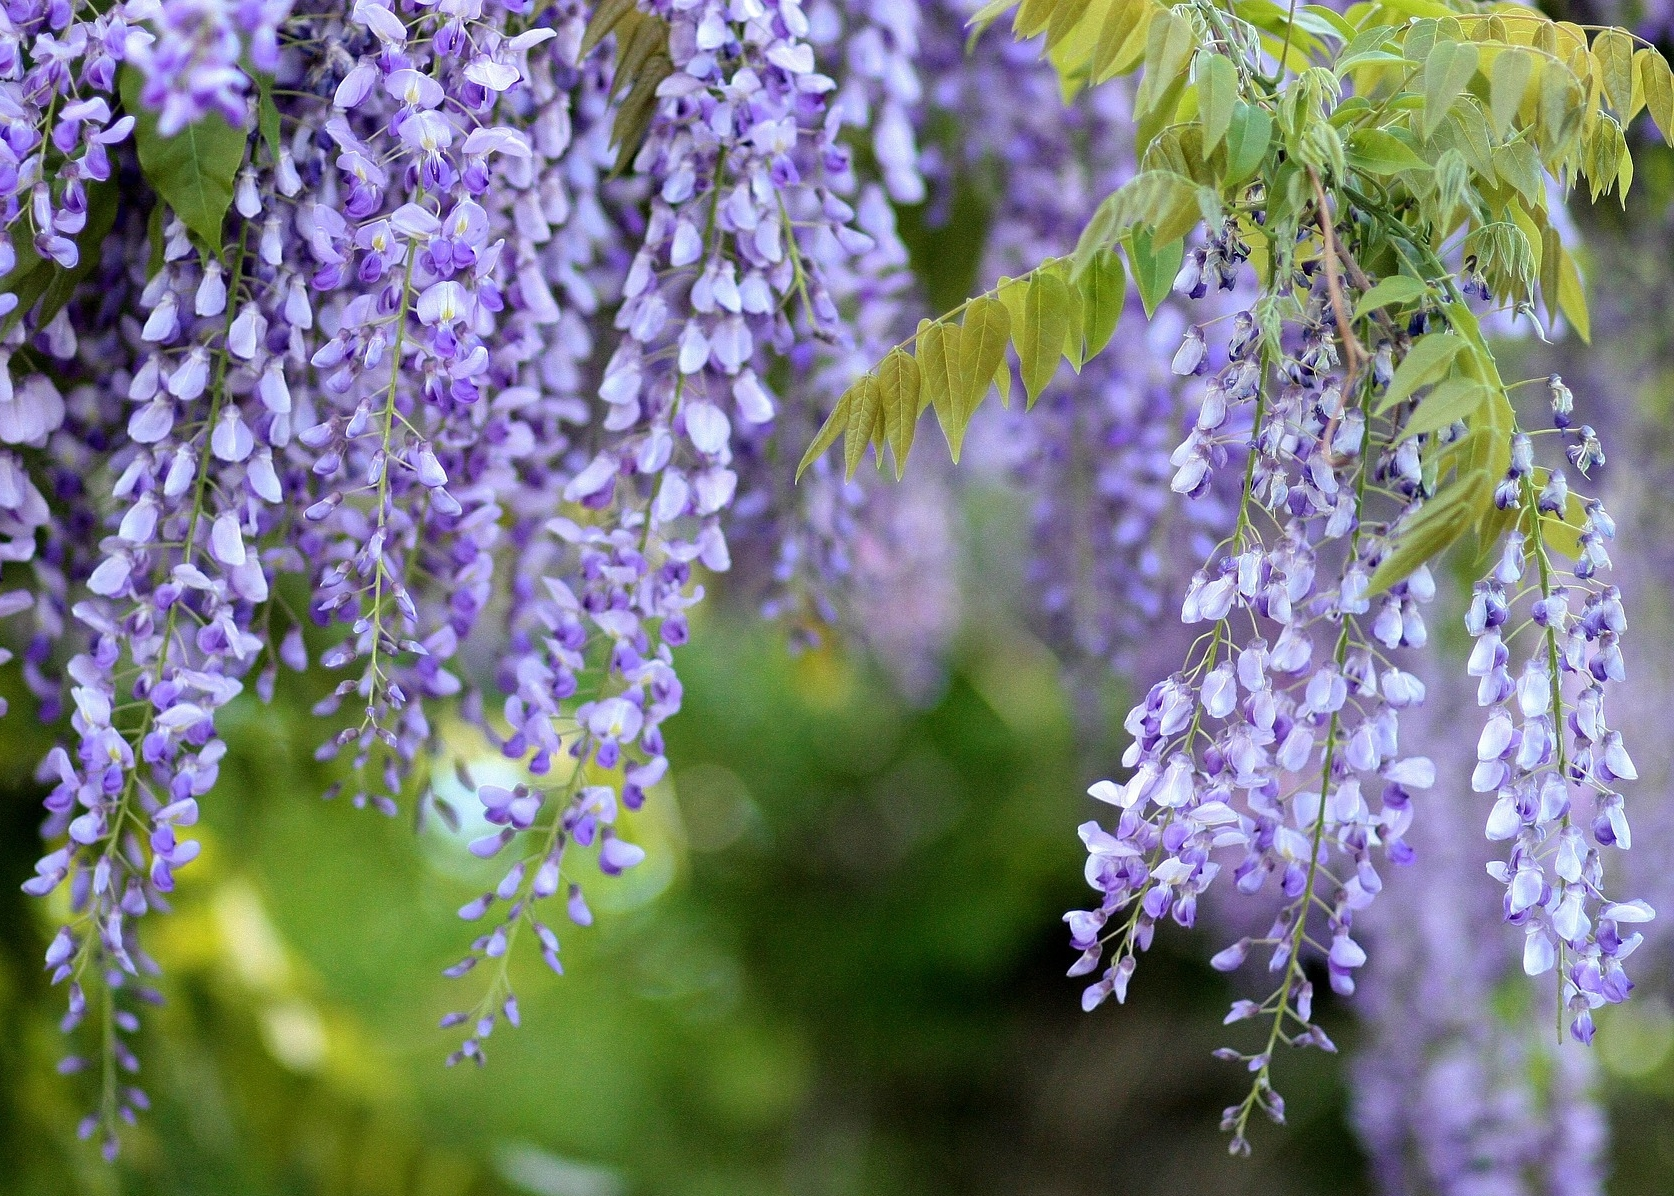 Wisteria How To Plant Grow And Care For Wisteria Vines The